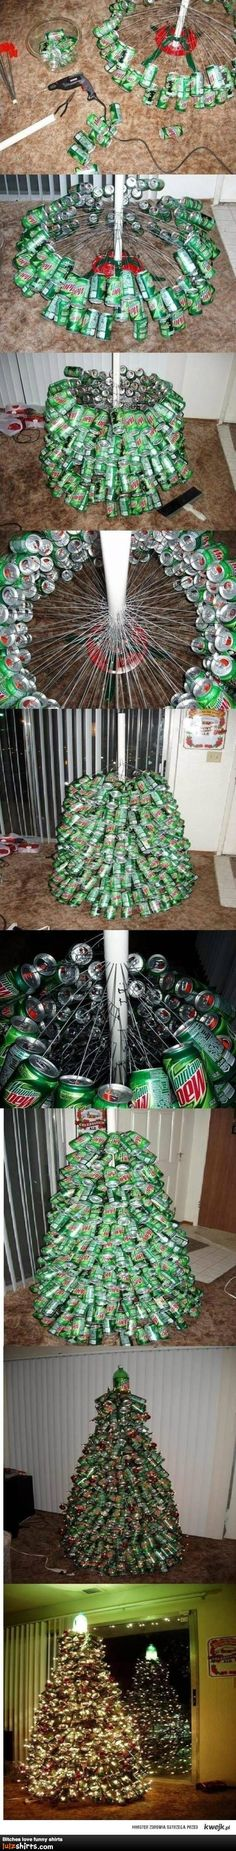 Mountain Dew Christmas Tree @Katie Longley